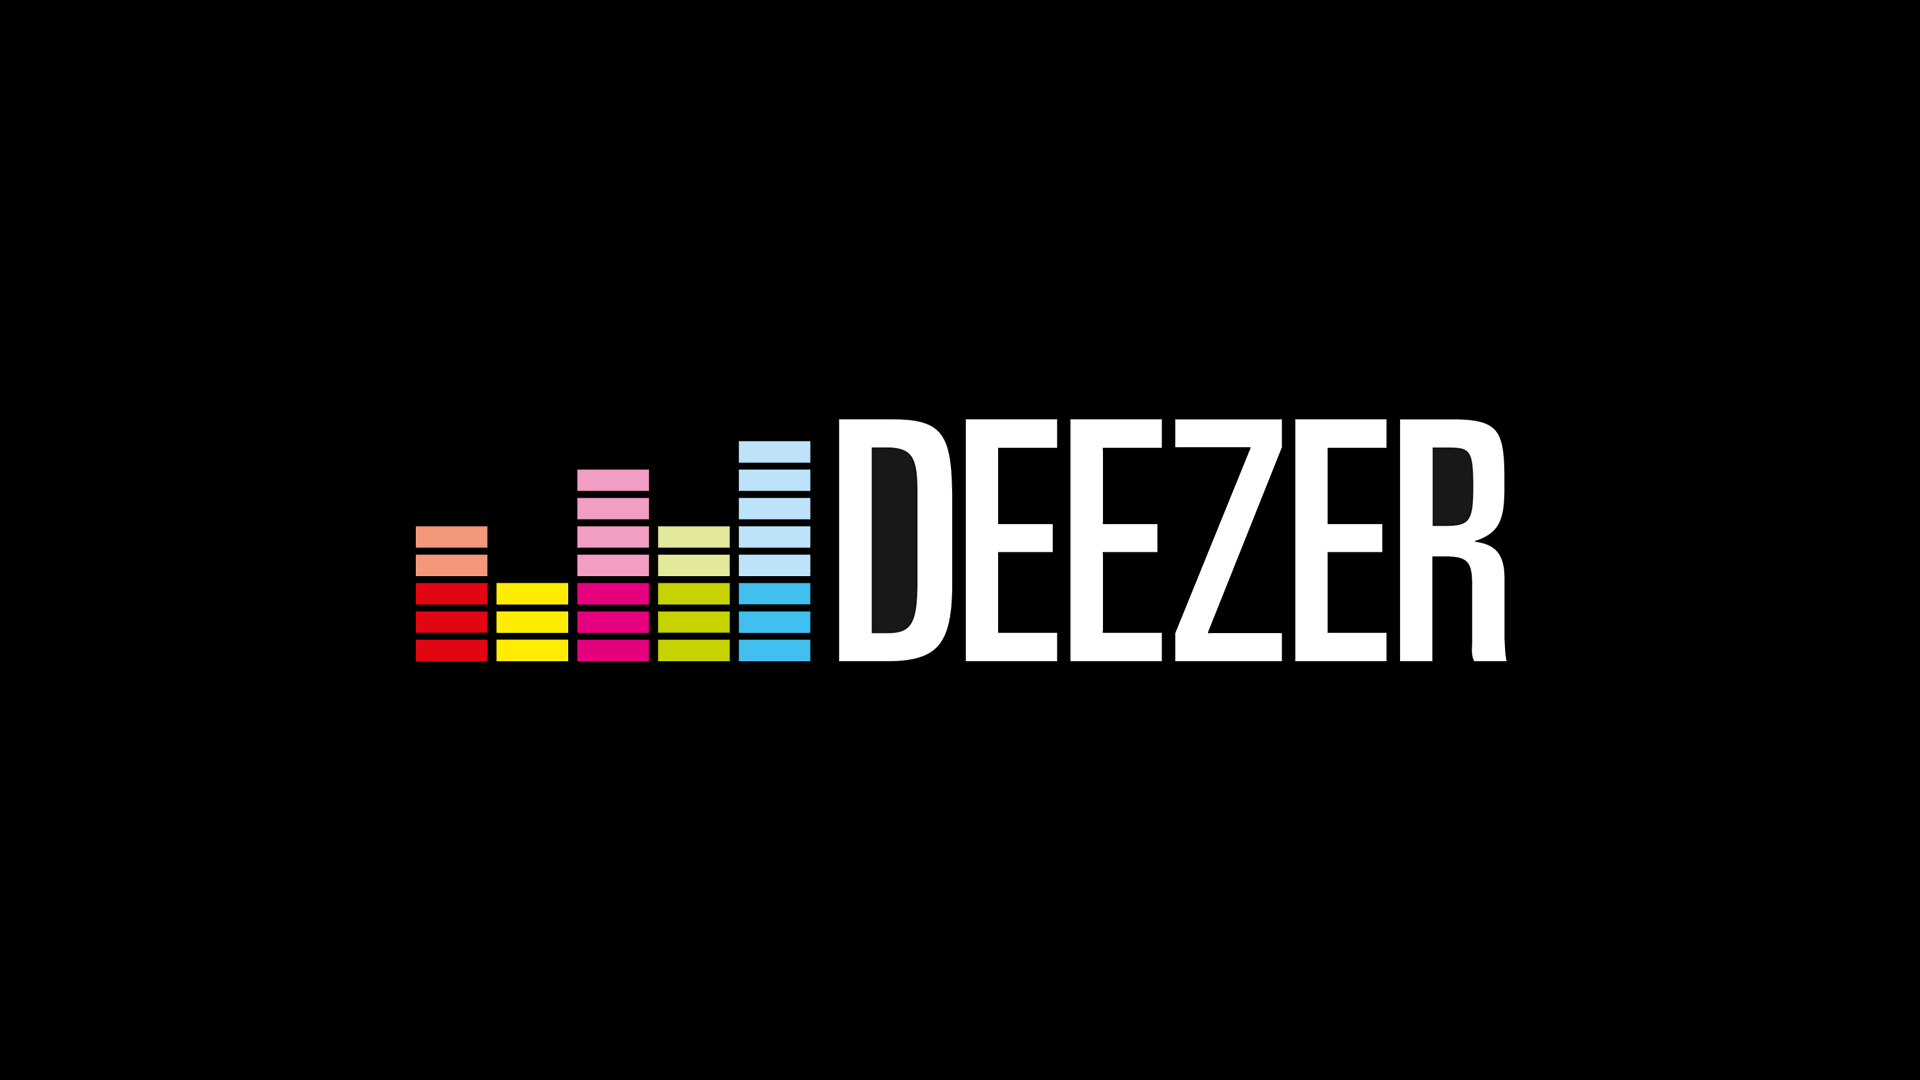 Add one track to our Deezer playlist with 500+ fans for 3 weeks